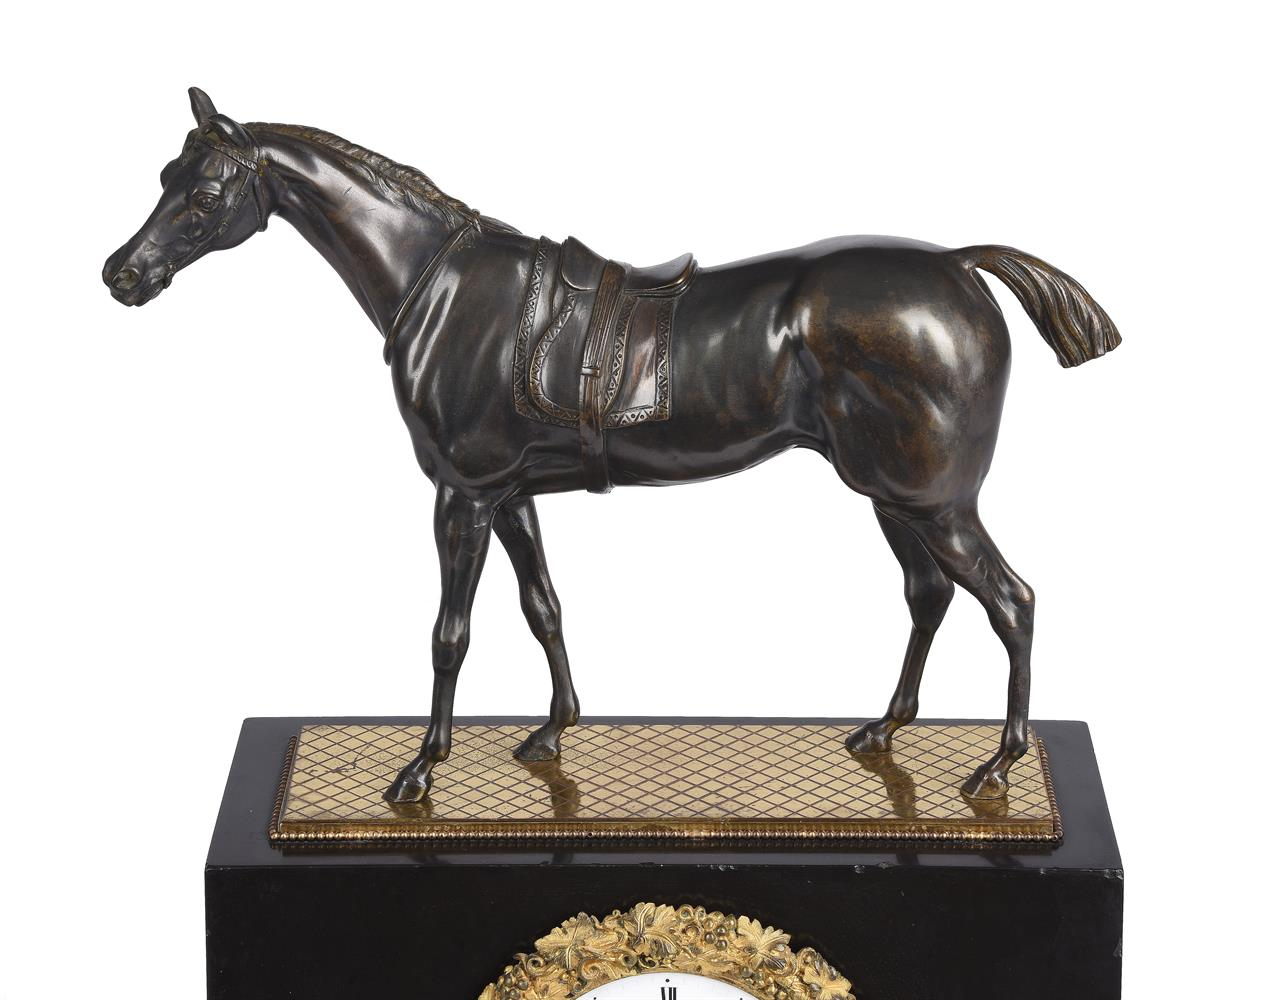 A FRENCH LOUIS PHILIPPE PATINATED BRONZE AND ORMOLU MOUNTED BELGE NOIR MARBLE MANTEL CLOCK - Image 2 of 3